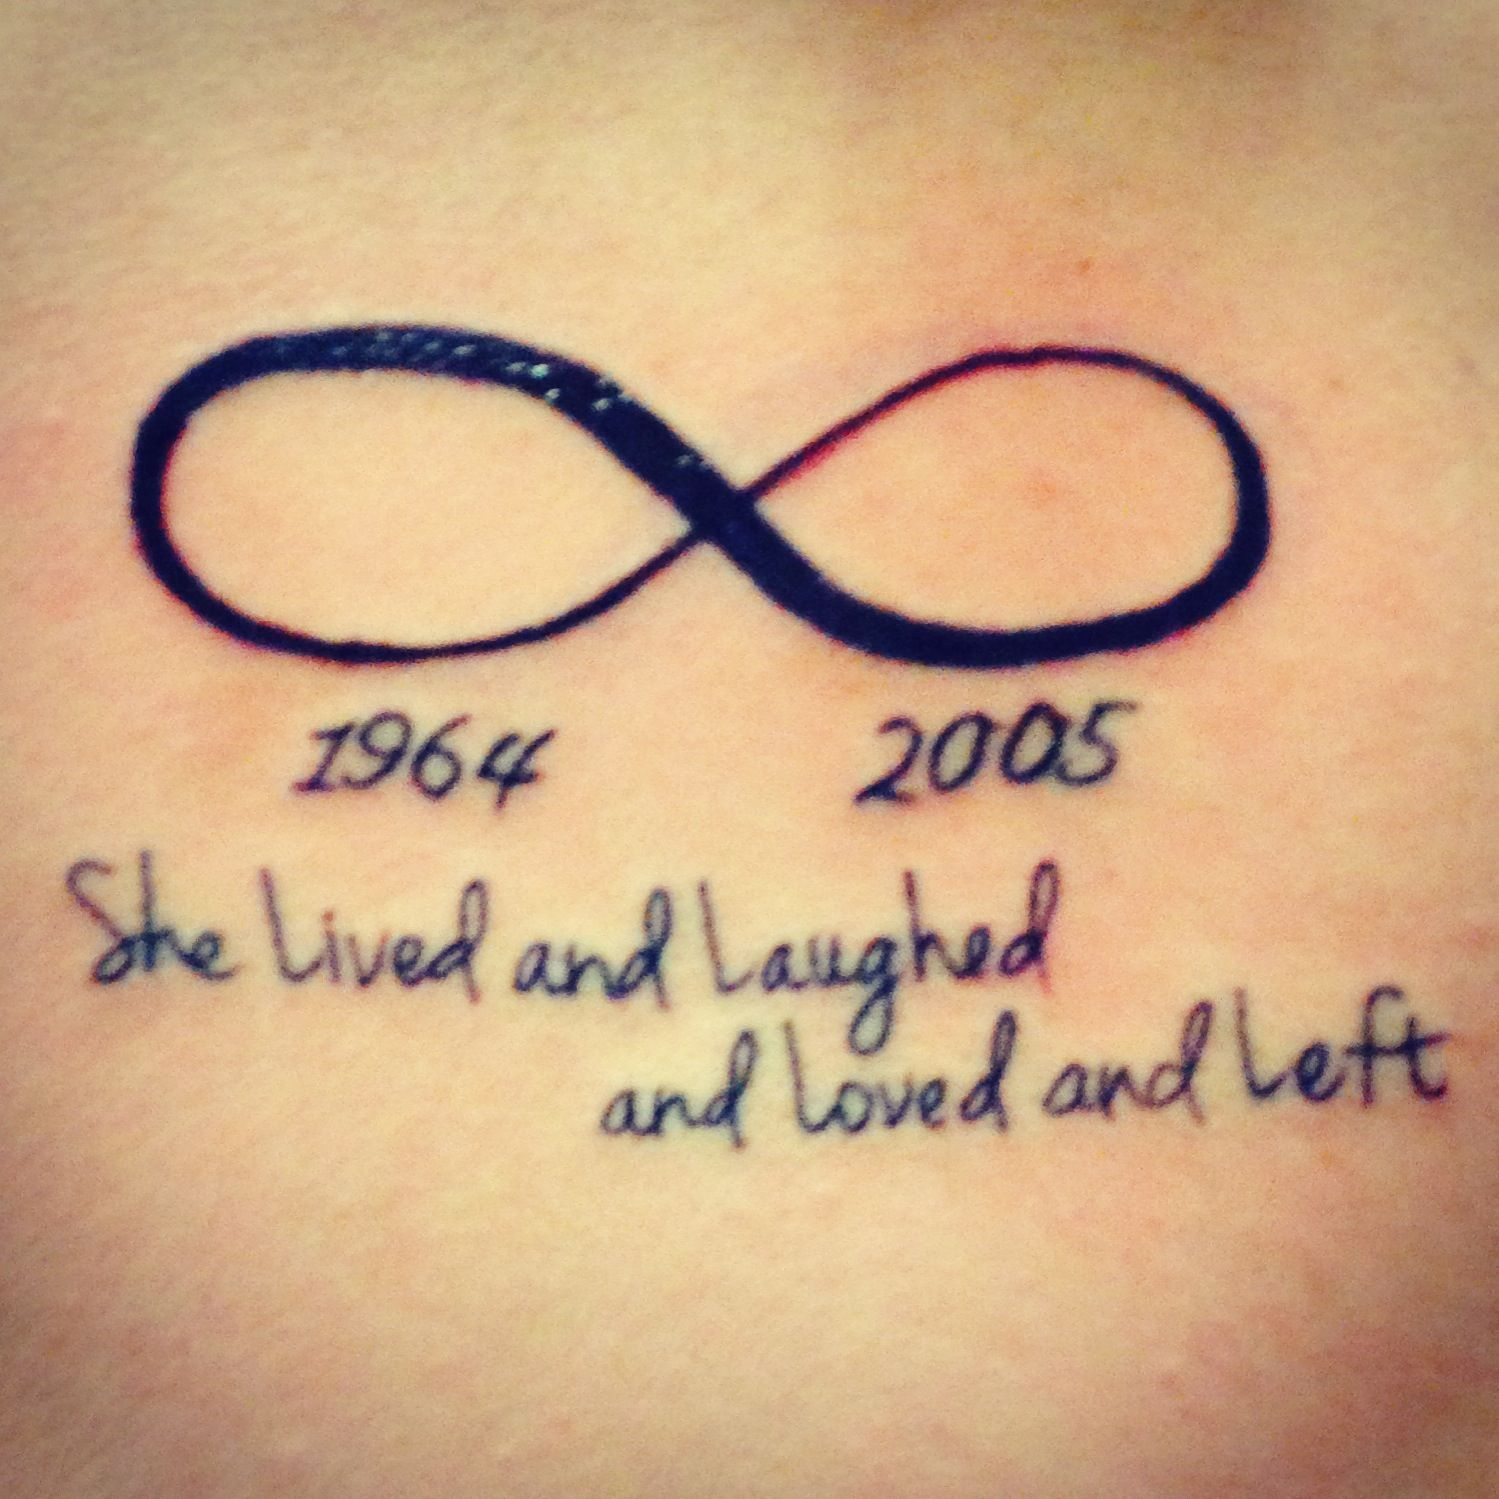 I donut usually like infinity tattoos but this one i love very